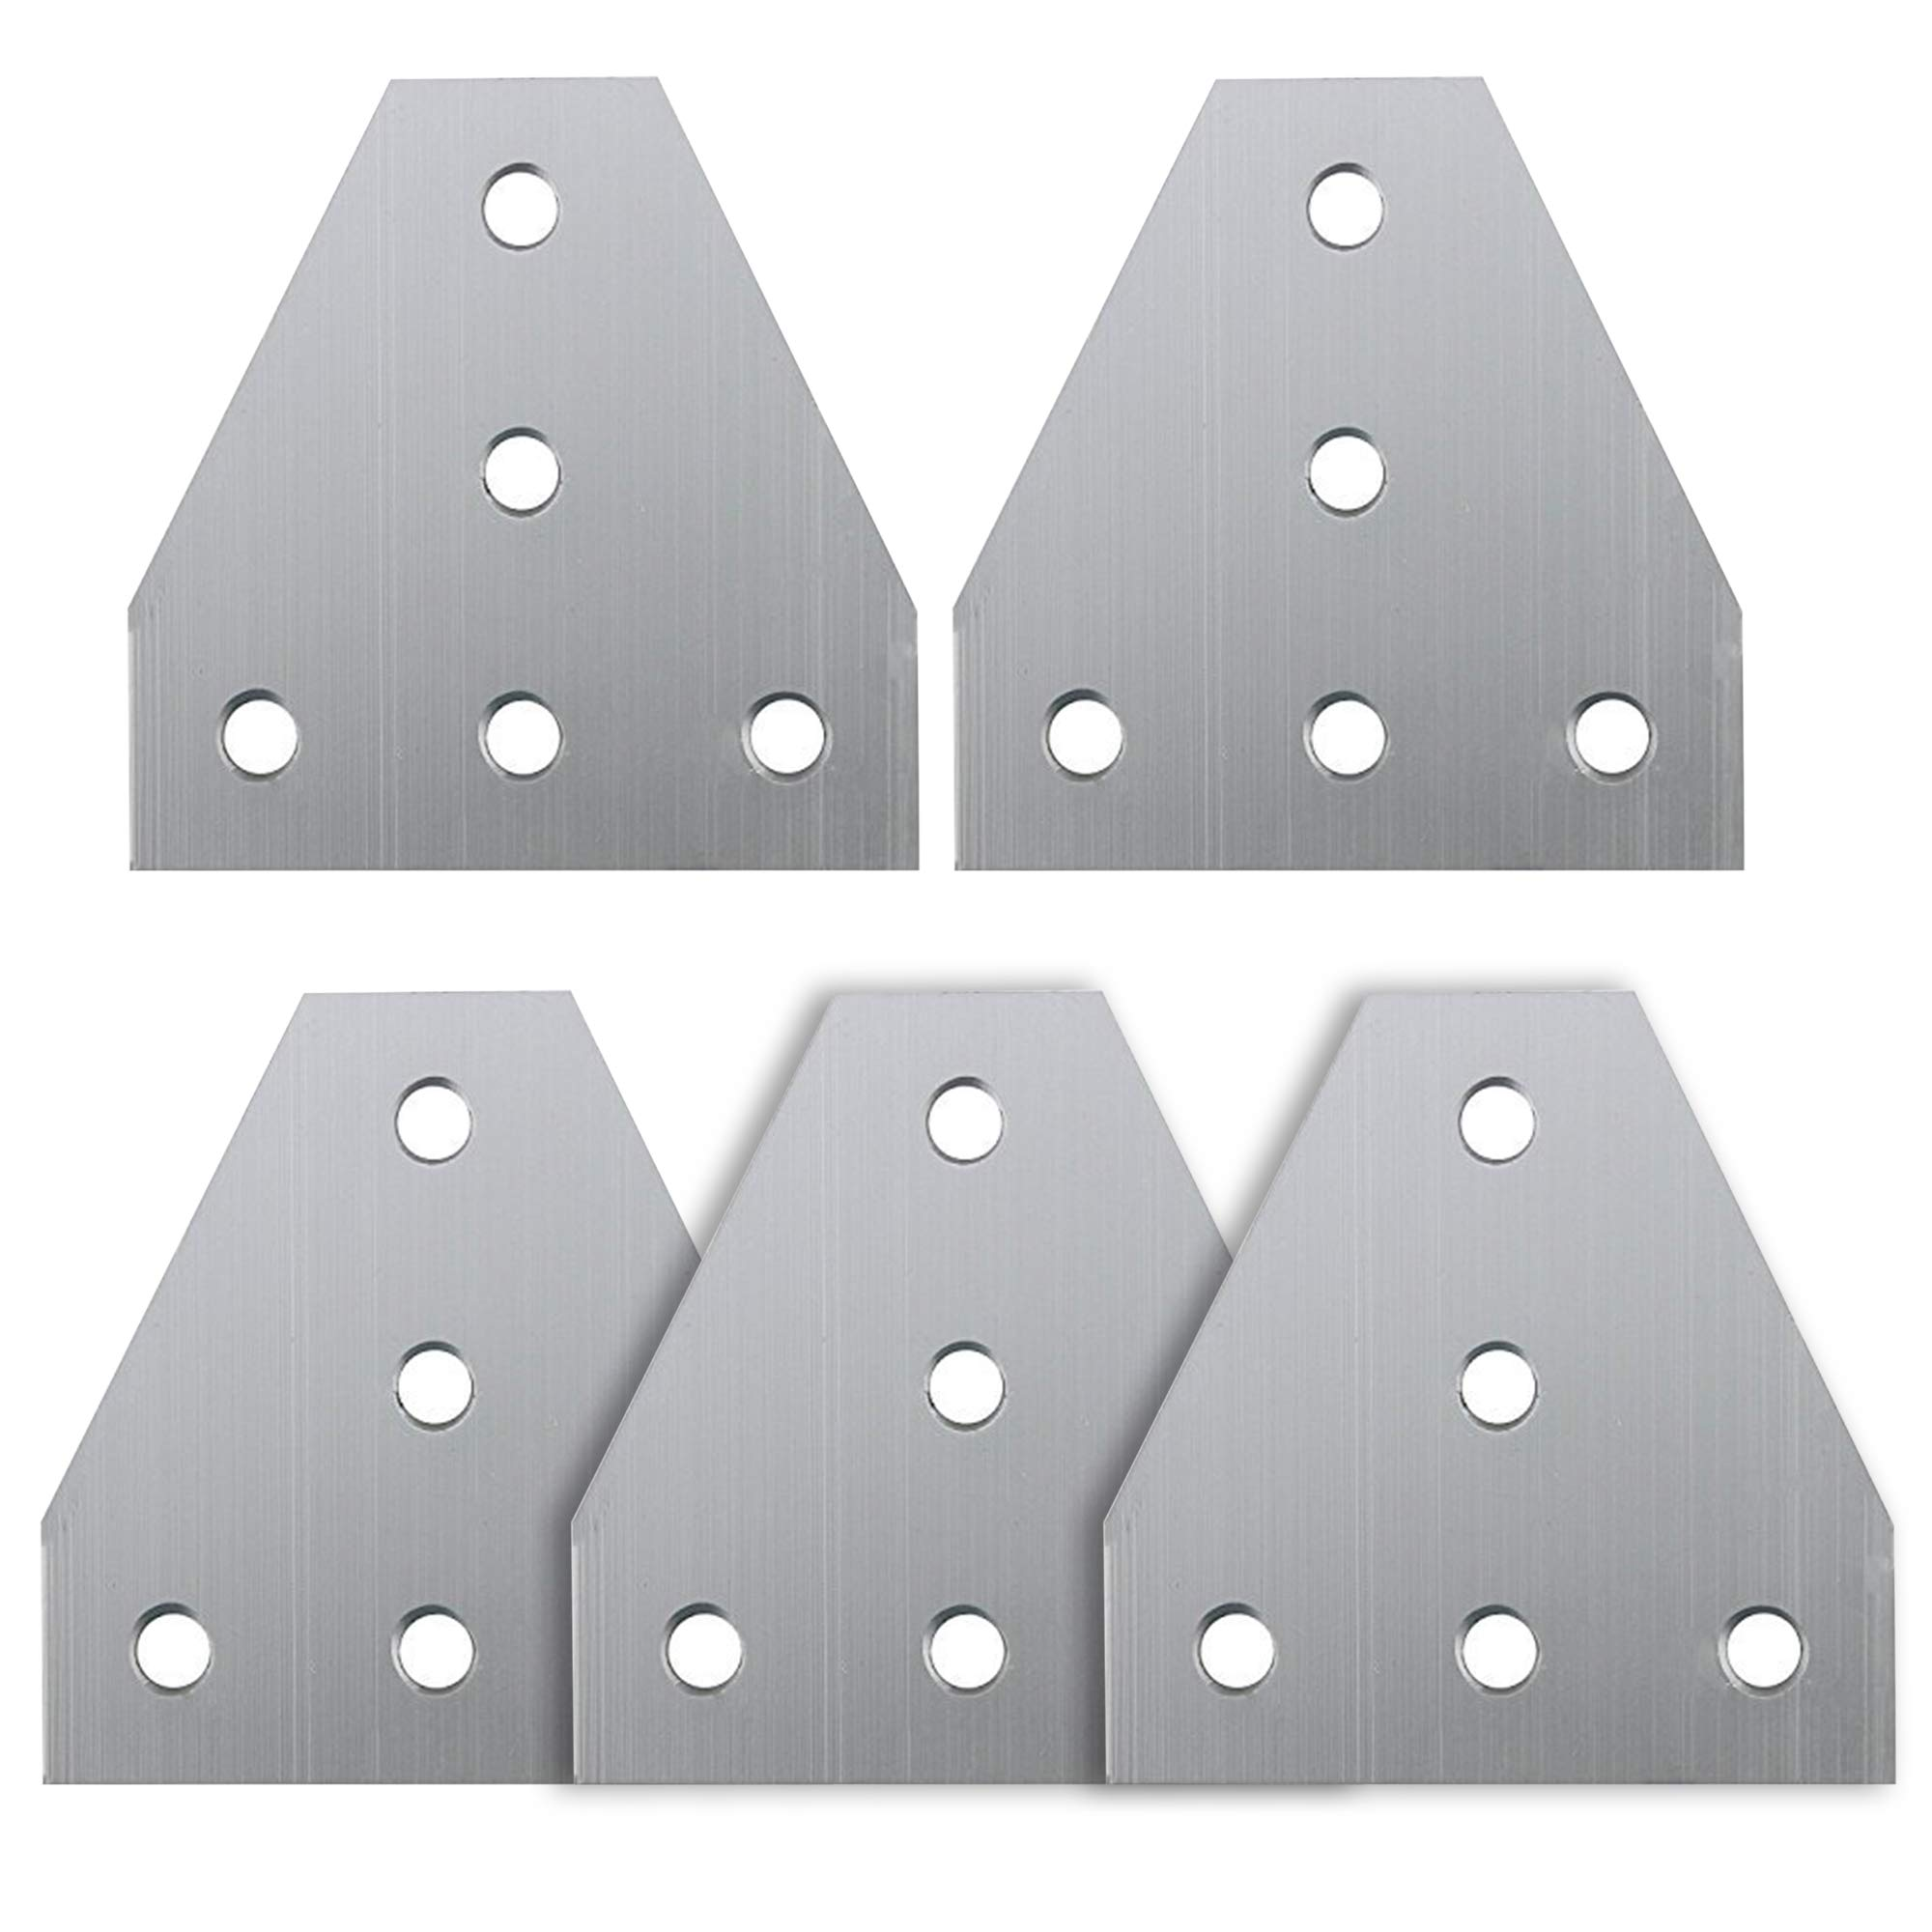 Iztoss 5-Hole 90 Degree Outside Tee Joining Plate for 2020 Series Aluminum Profile, Tee Joint Bracket Plate-5PCS in Pack